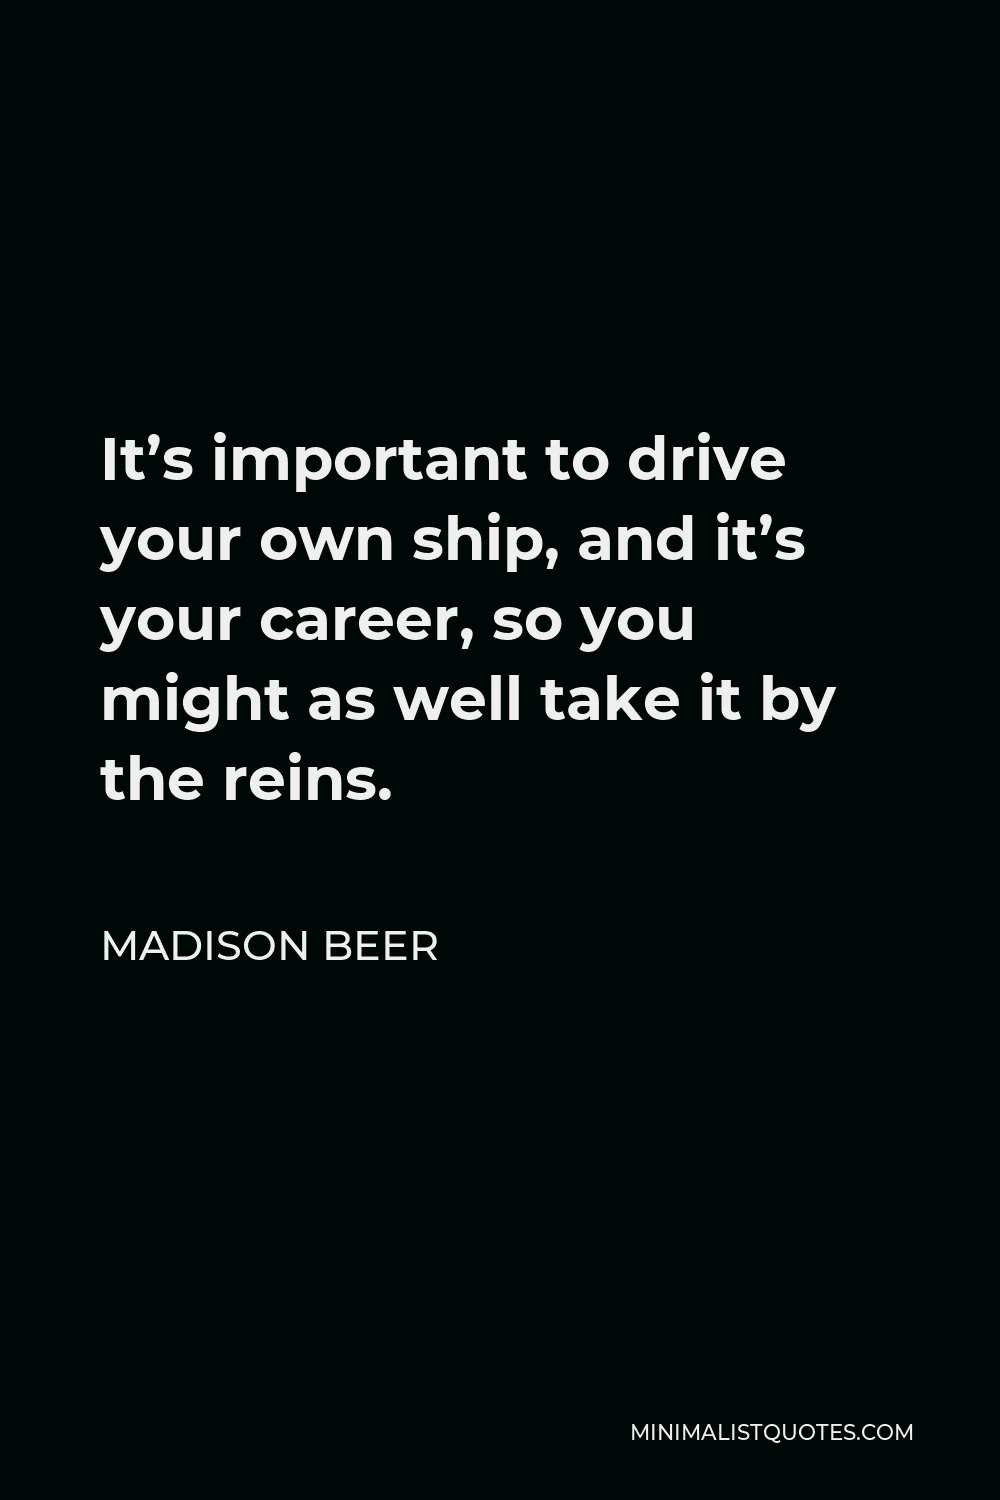 Madison Beer Quote - It's important to drive your own ship, and it's your career, so you might as well take it by the reins.